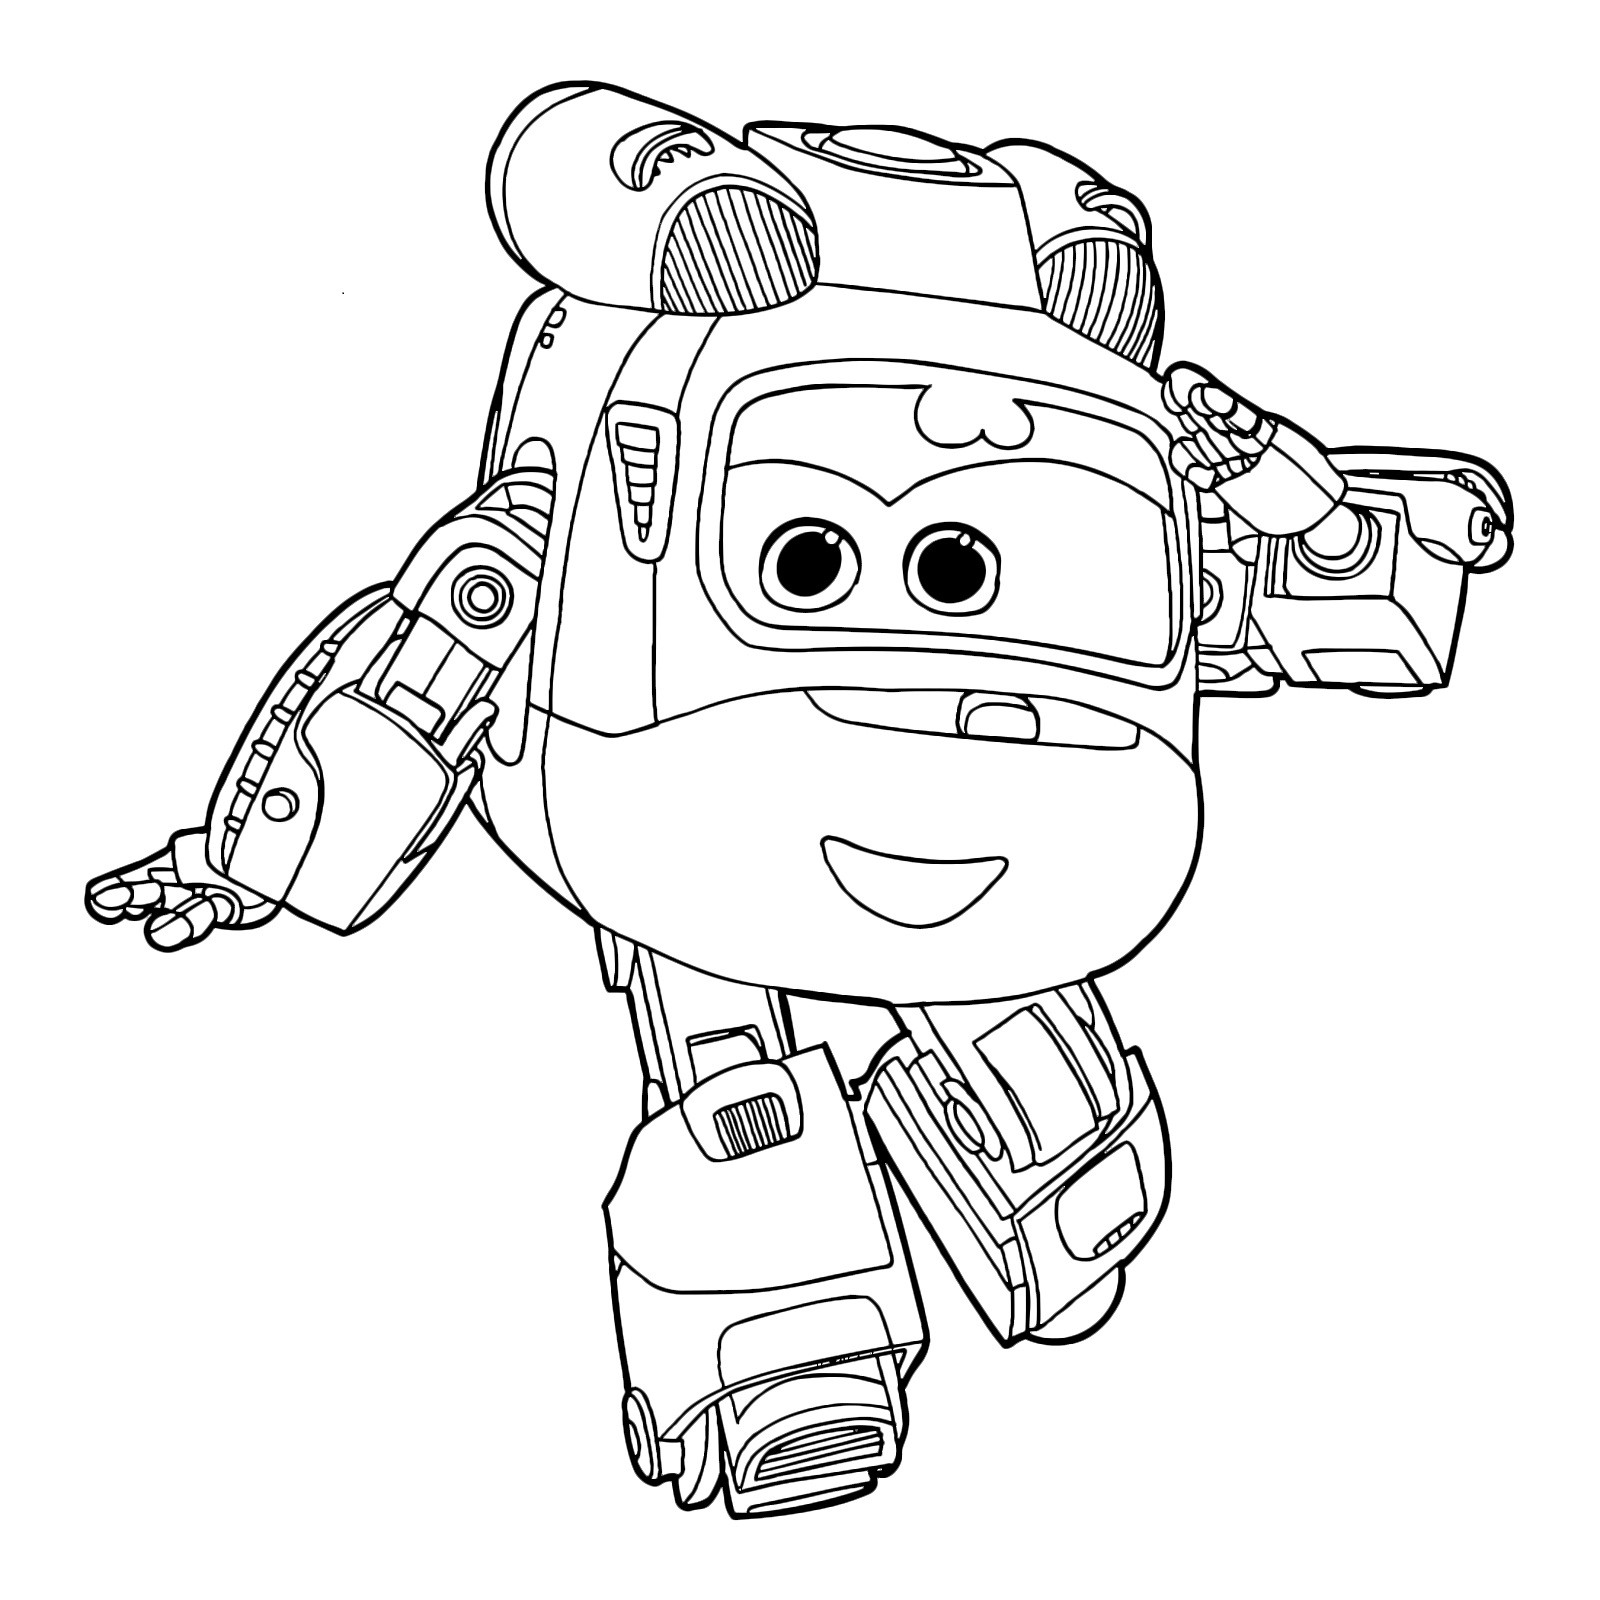 1600x1600 Robocar Poli Coloring Pages And Amber For Kids Beautiful Sup